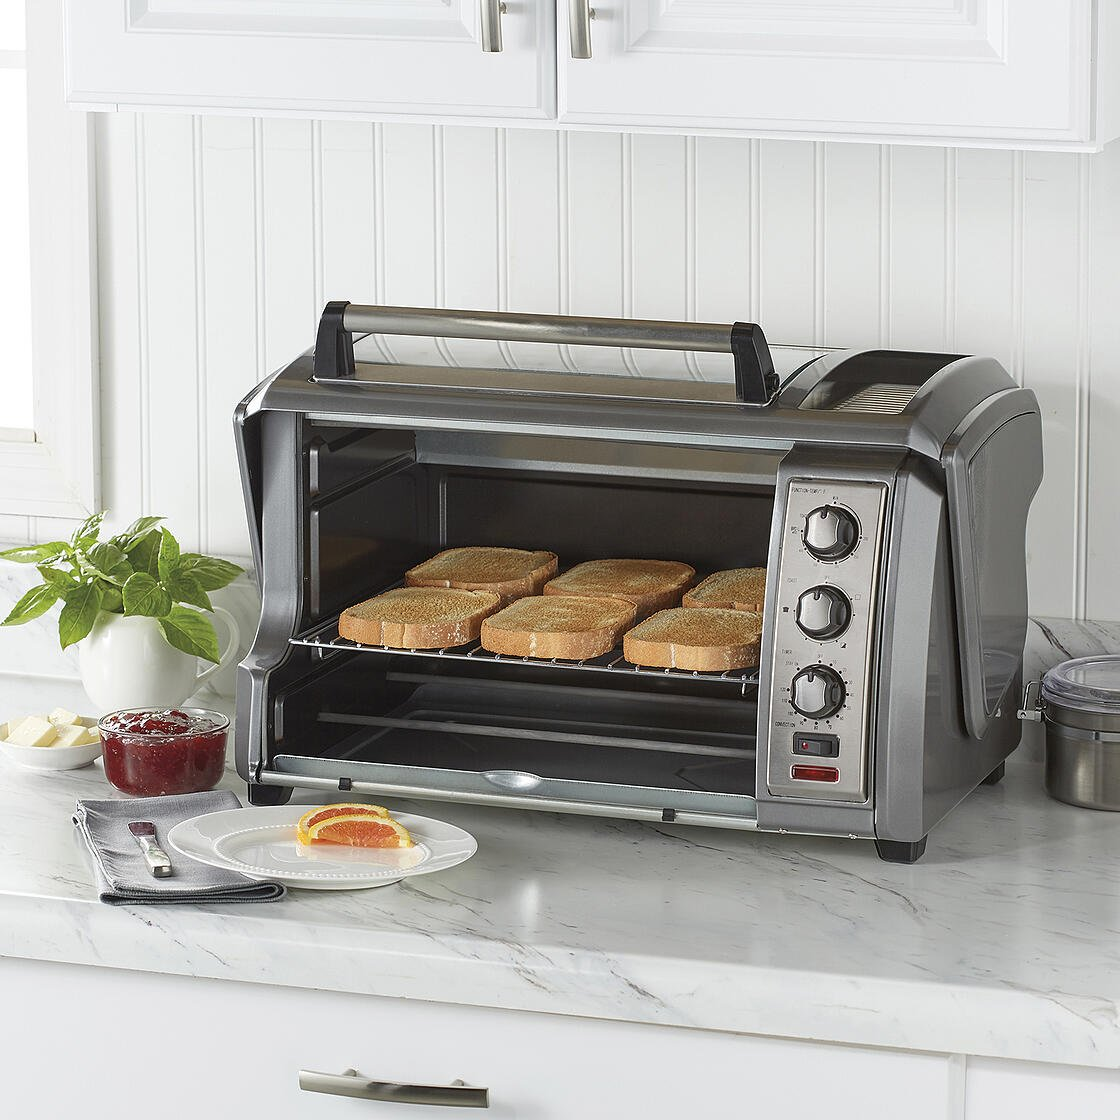 Easy Reach Oven